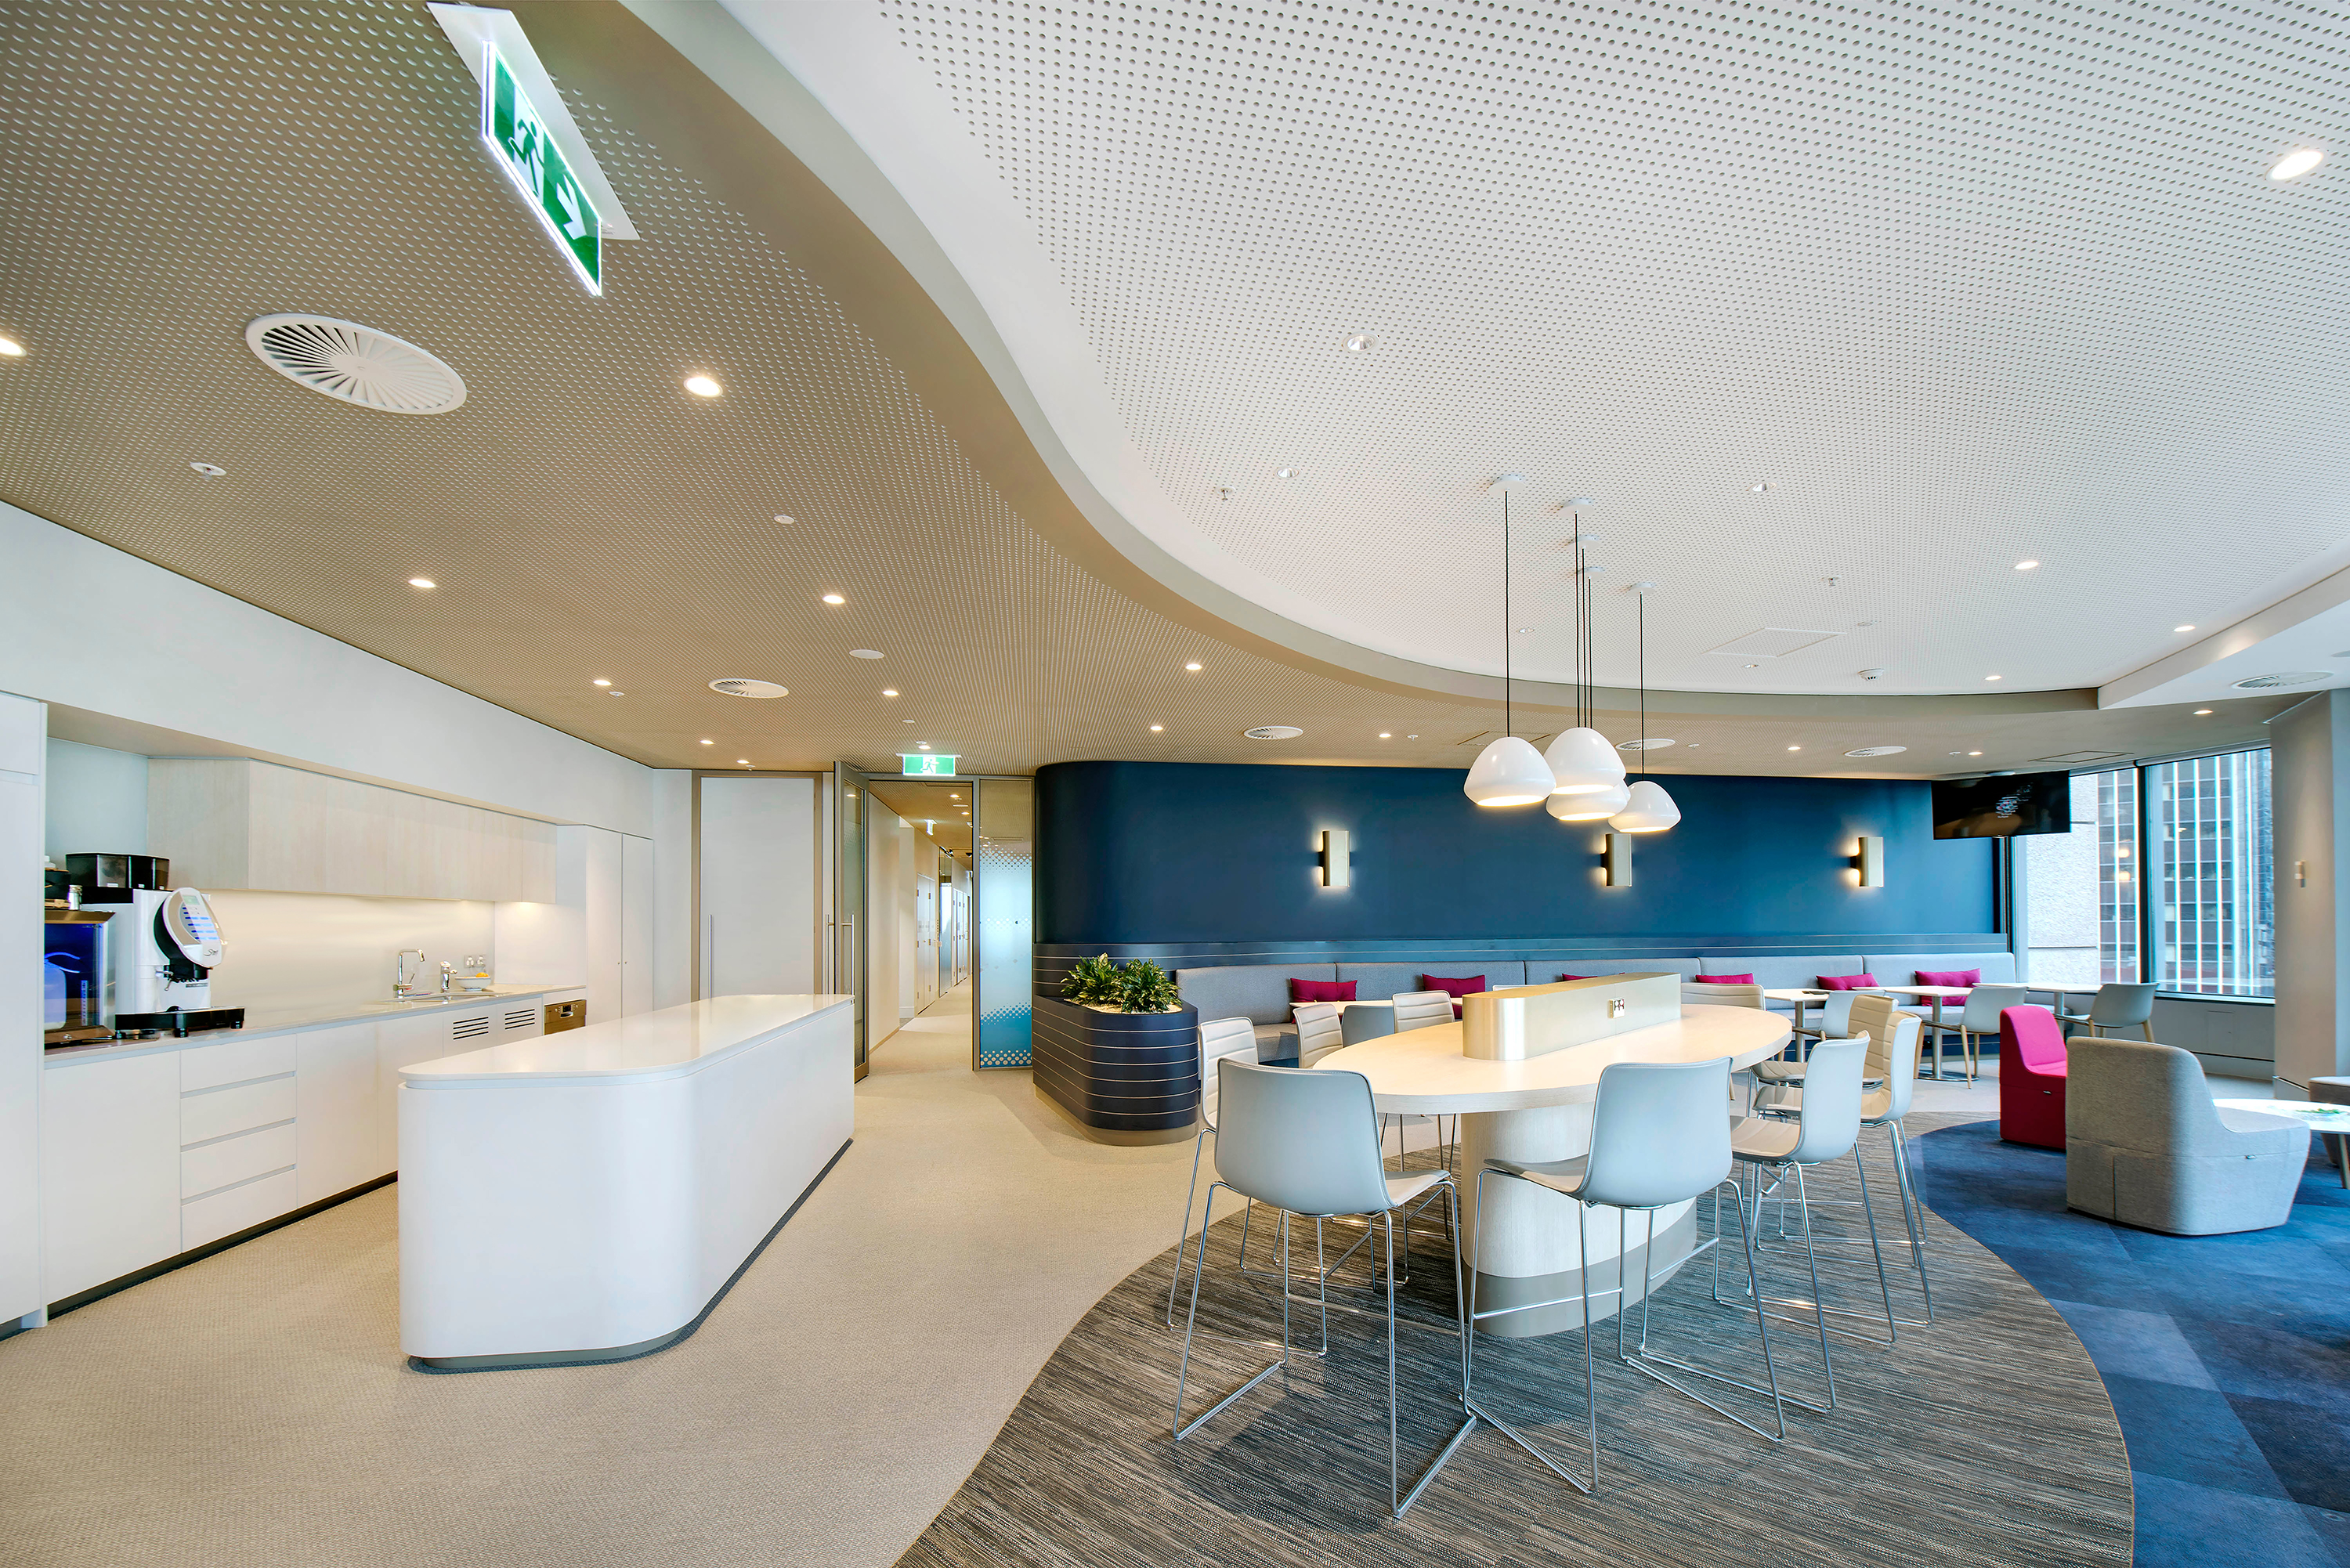 16/10/ 2014 – MPA Projects – Genre offices, Sydney – PHOTO BY JA